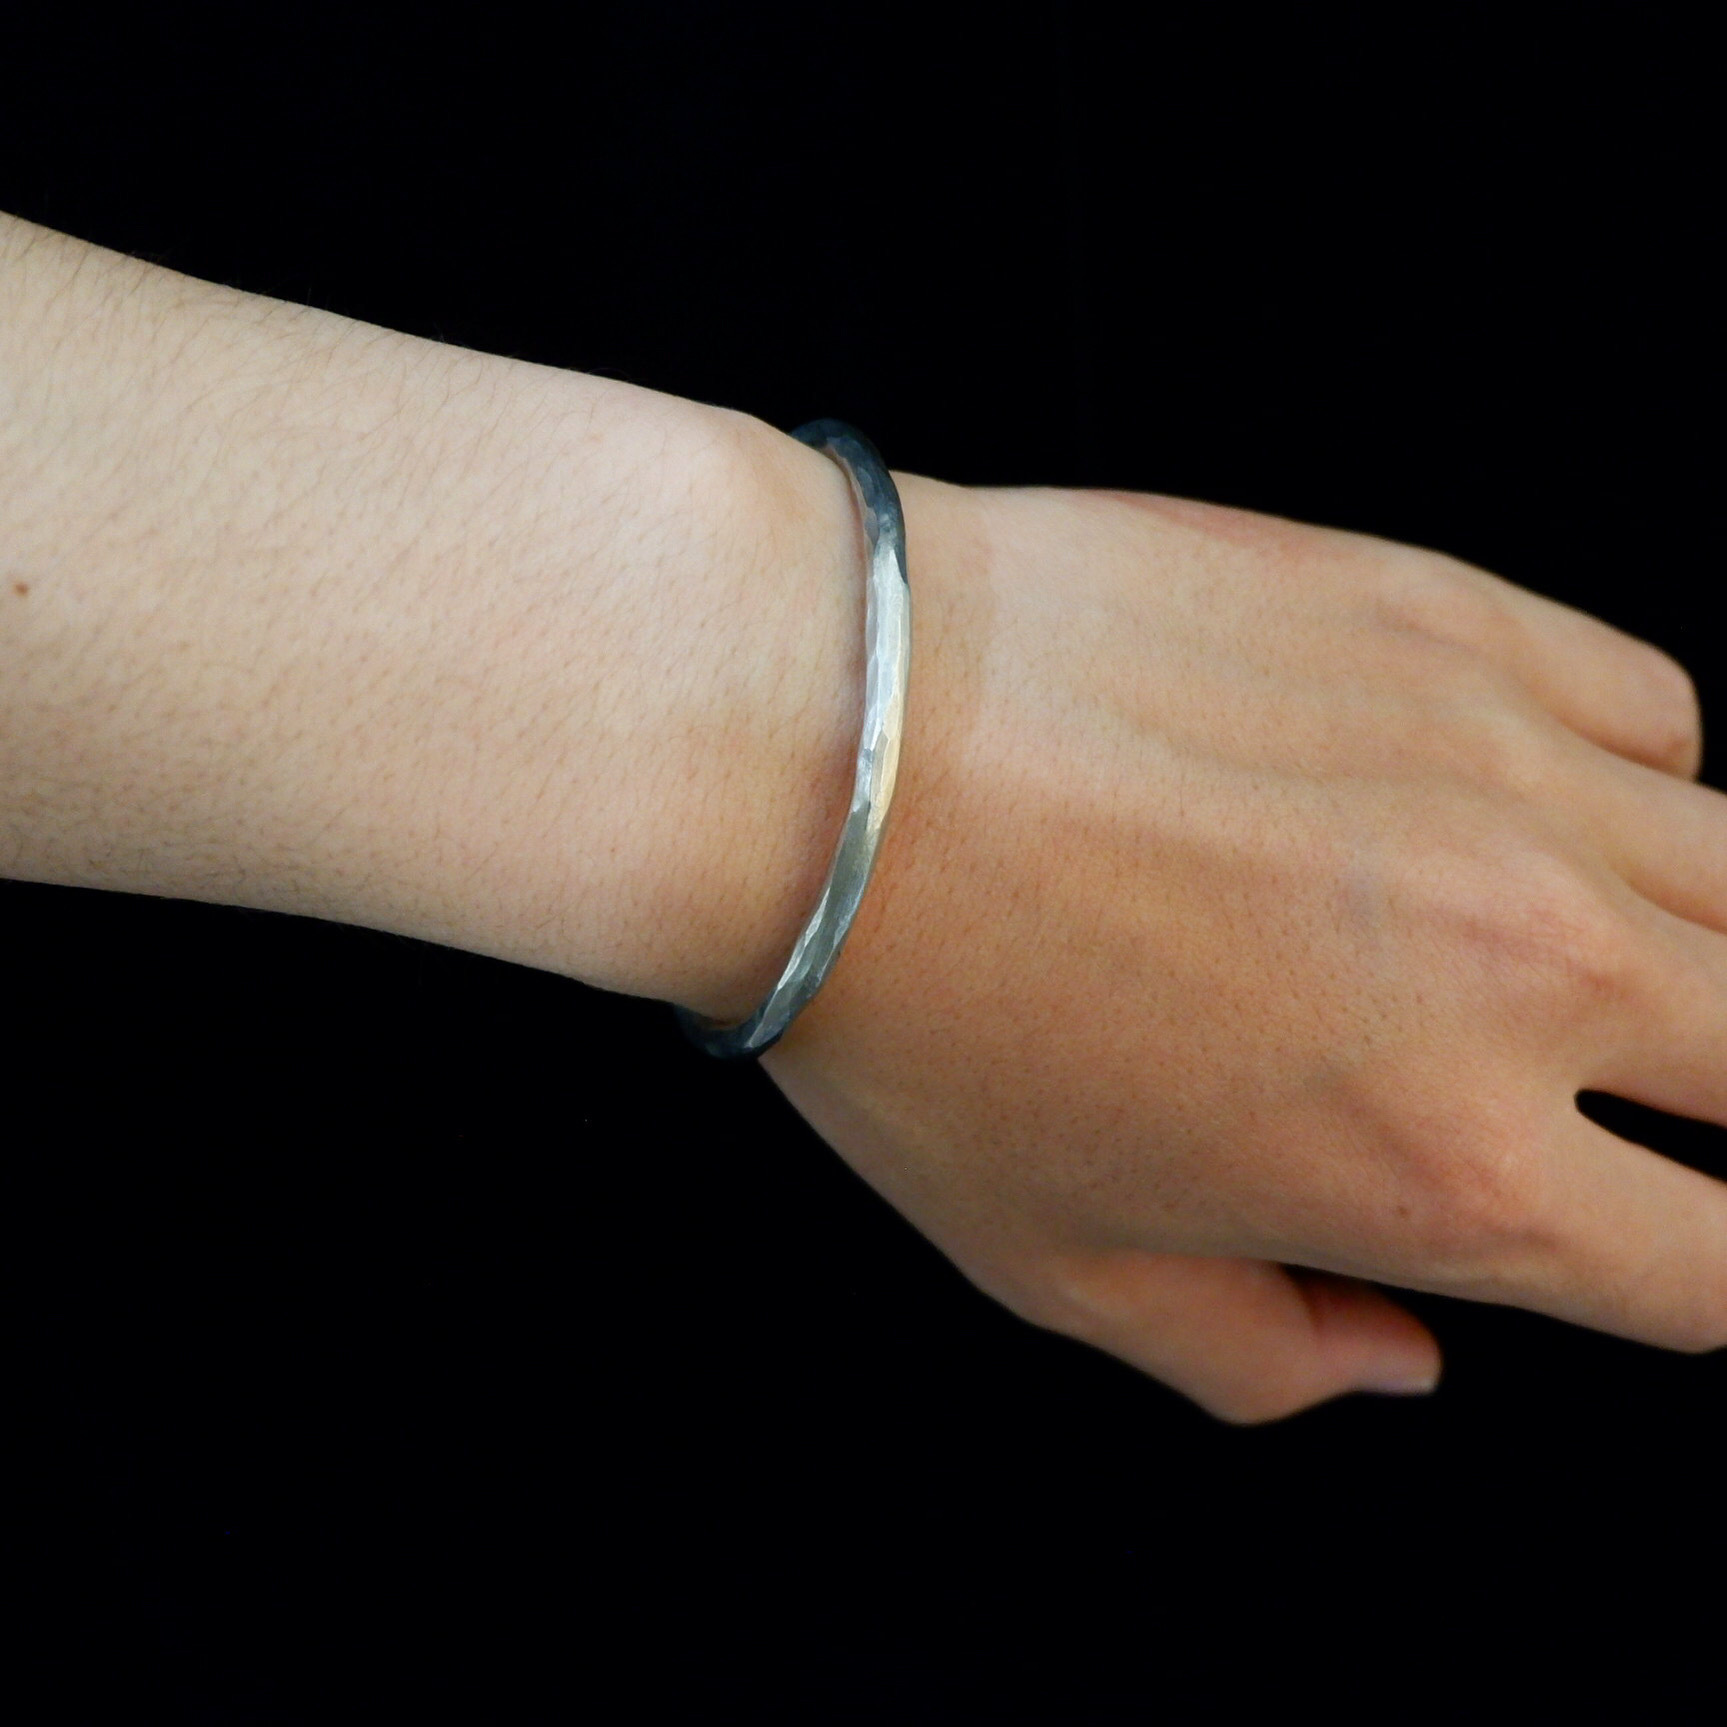 【UMB-001】Hammered Tin Bangle